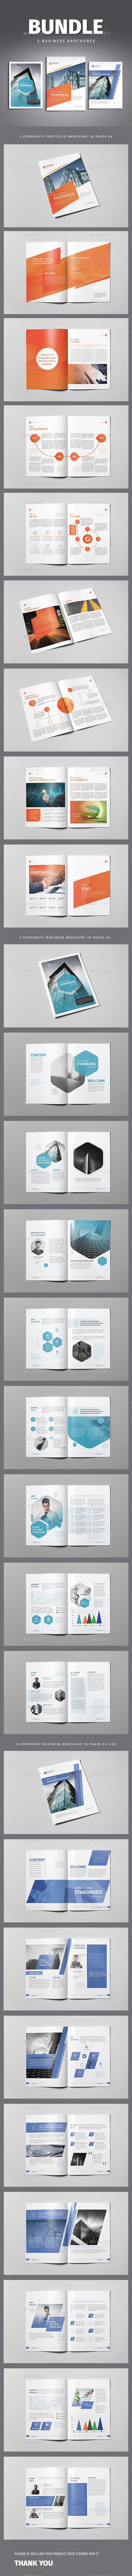 Brochure A4 Bundle - Templates for Indesign - Corporate Brochures